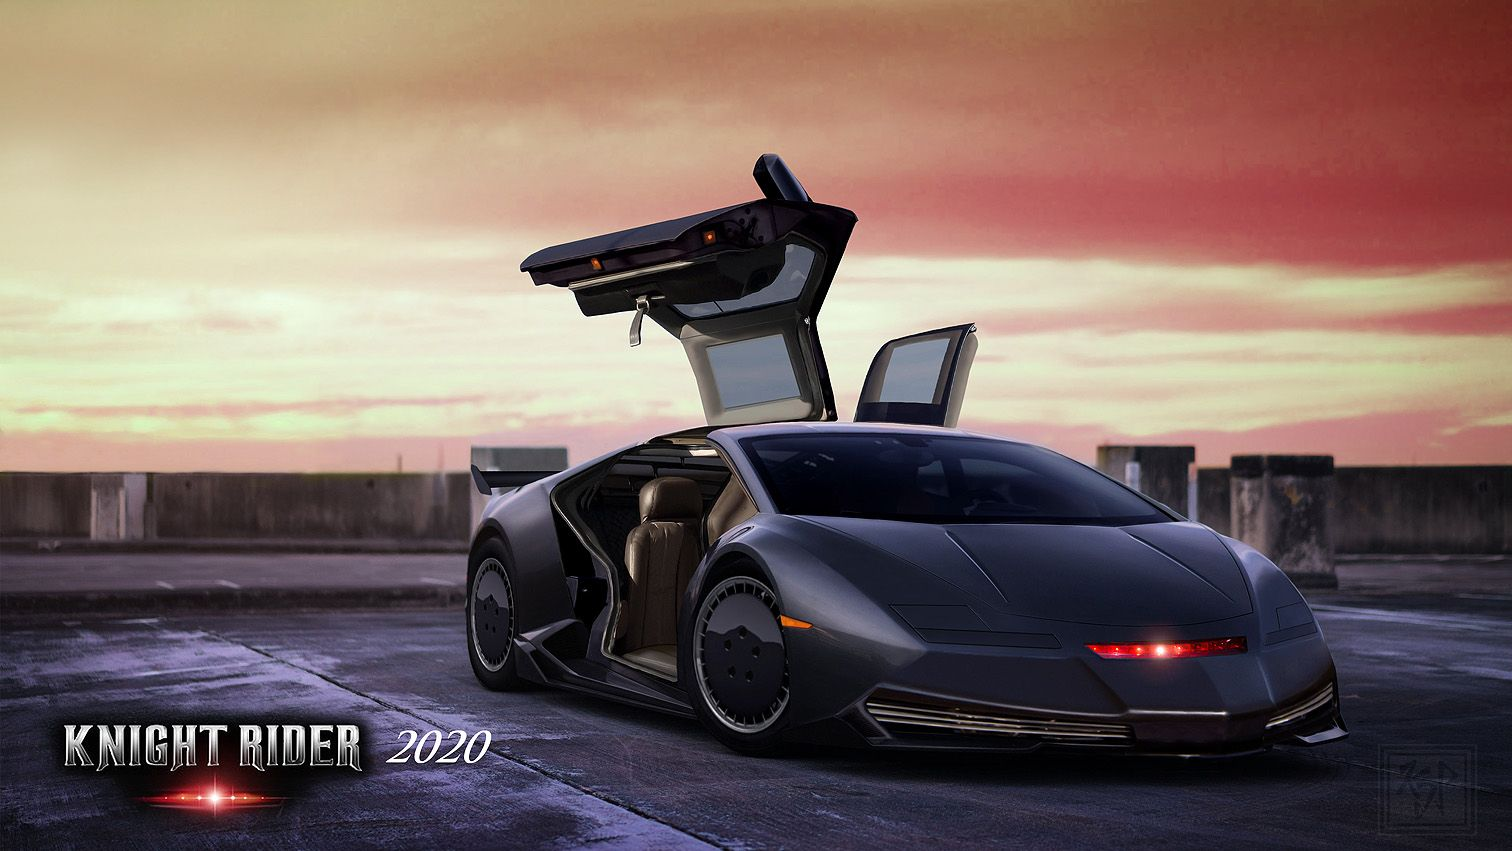 Knight Rider 2020 My Modern Version Of K I T T Passenger Door Open And Driver S Side T Top Up By Kevin Pochron 10 20 2018 Knight Rider Rider Photo